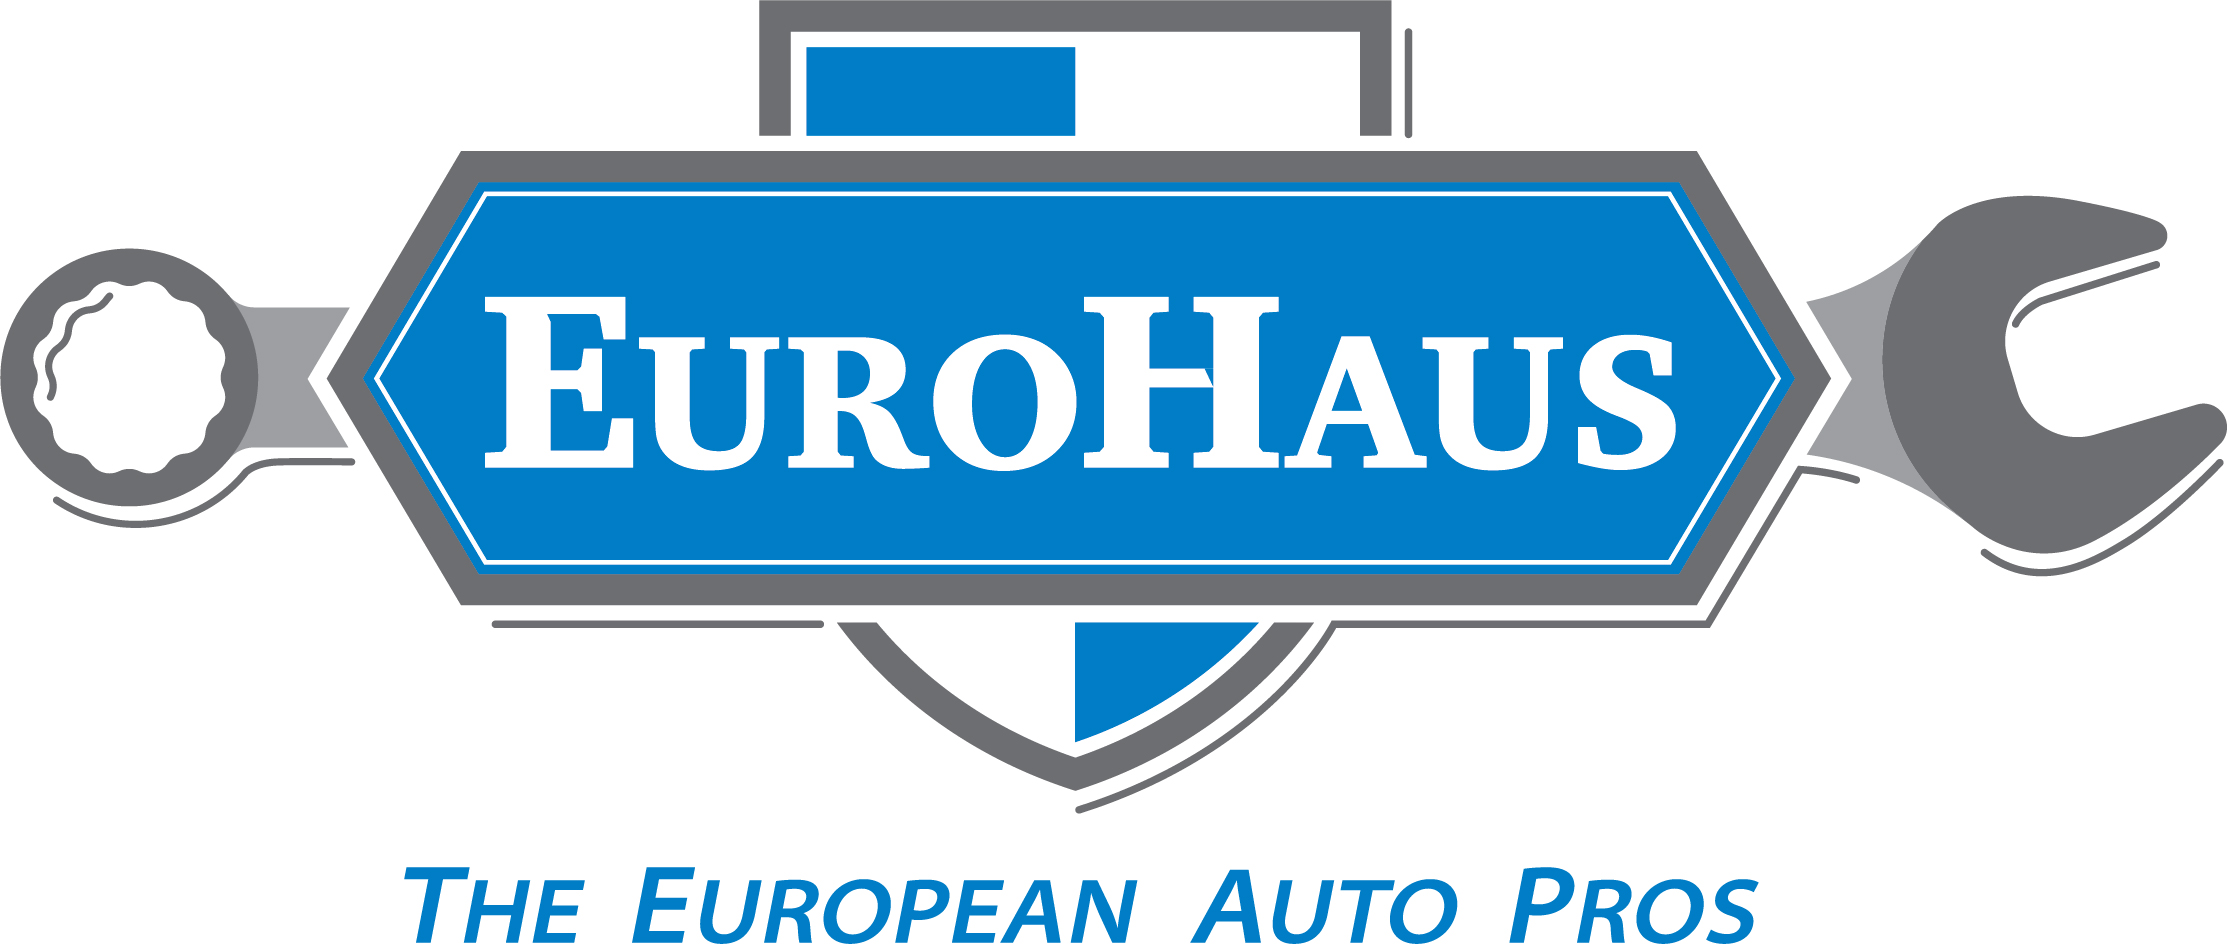 EuroHaus-The-European-Auto-Pros.jpg